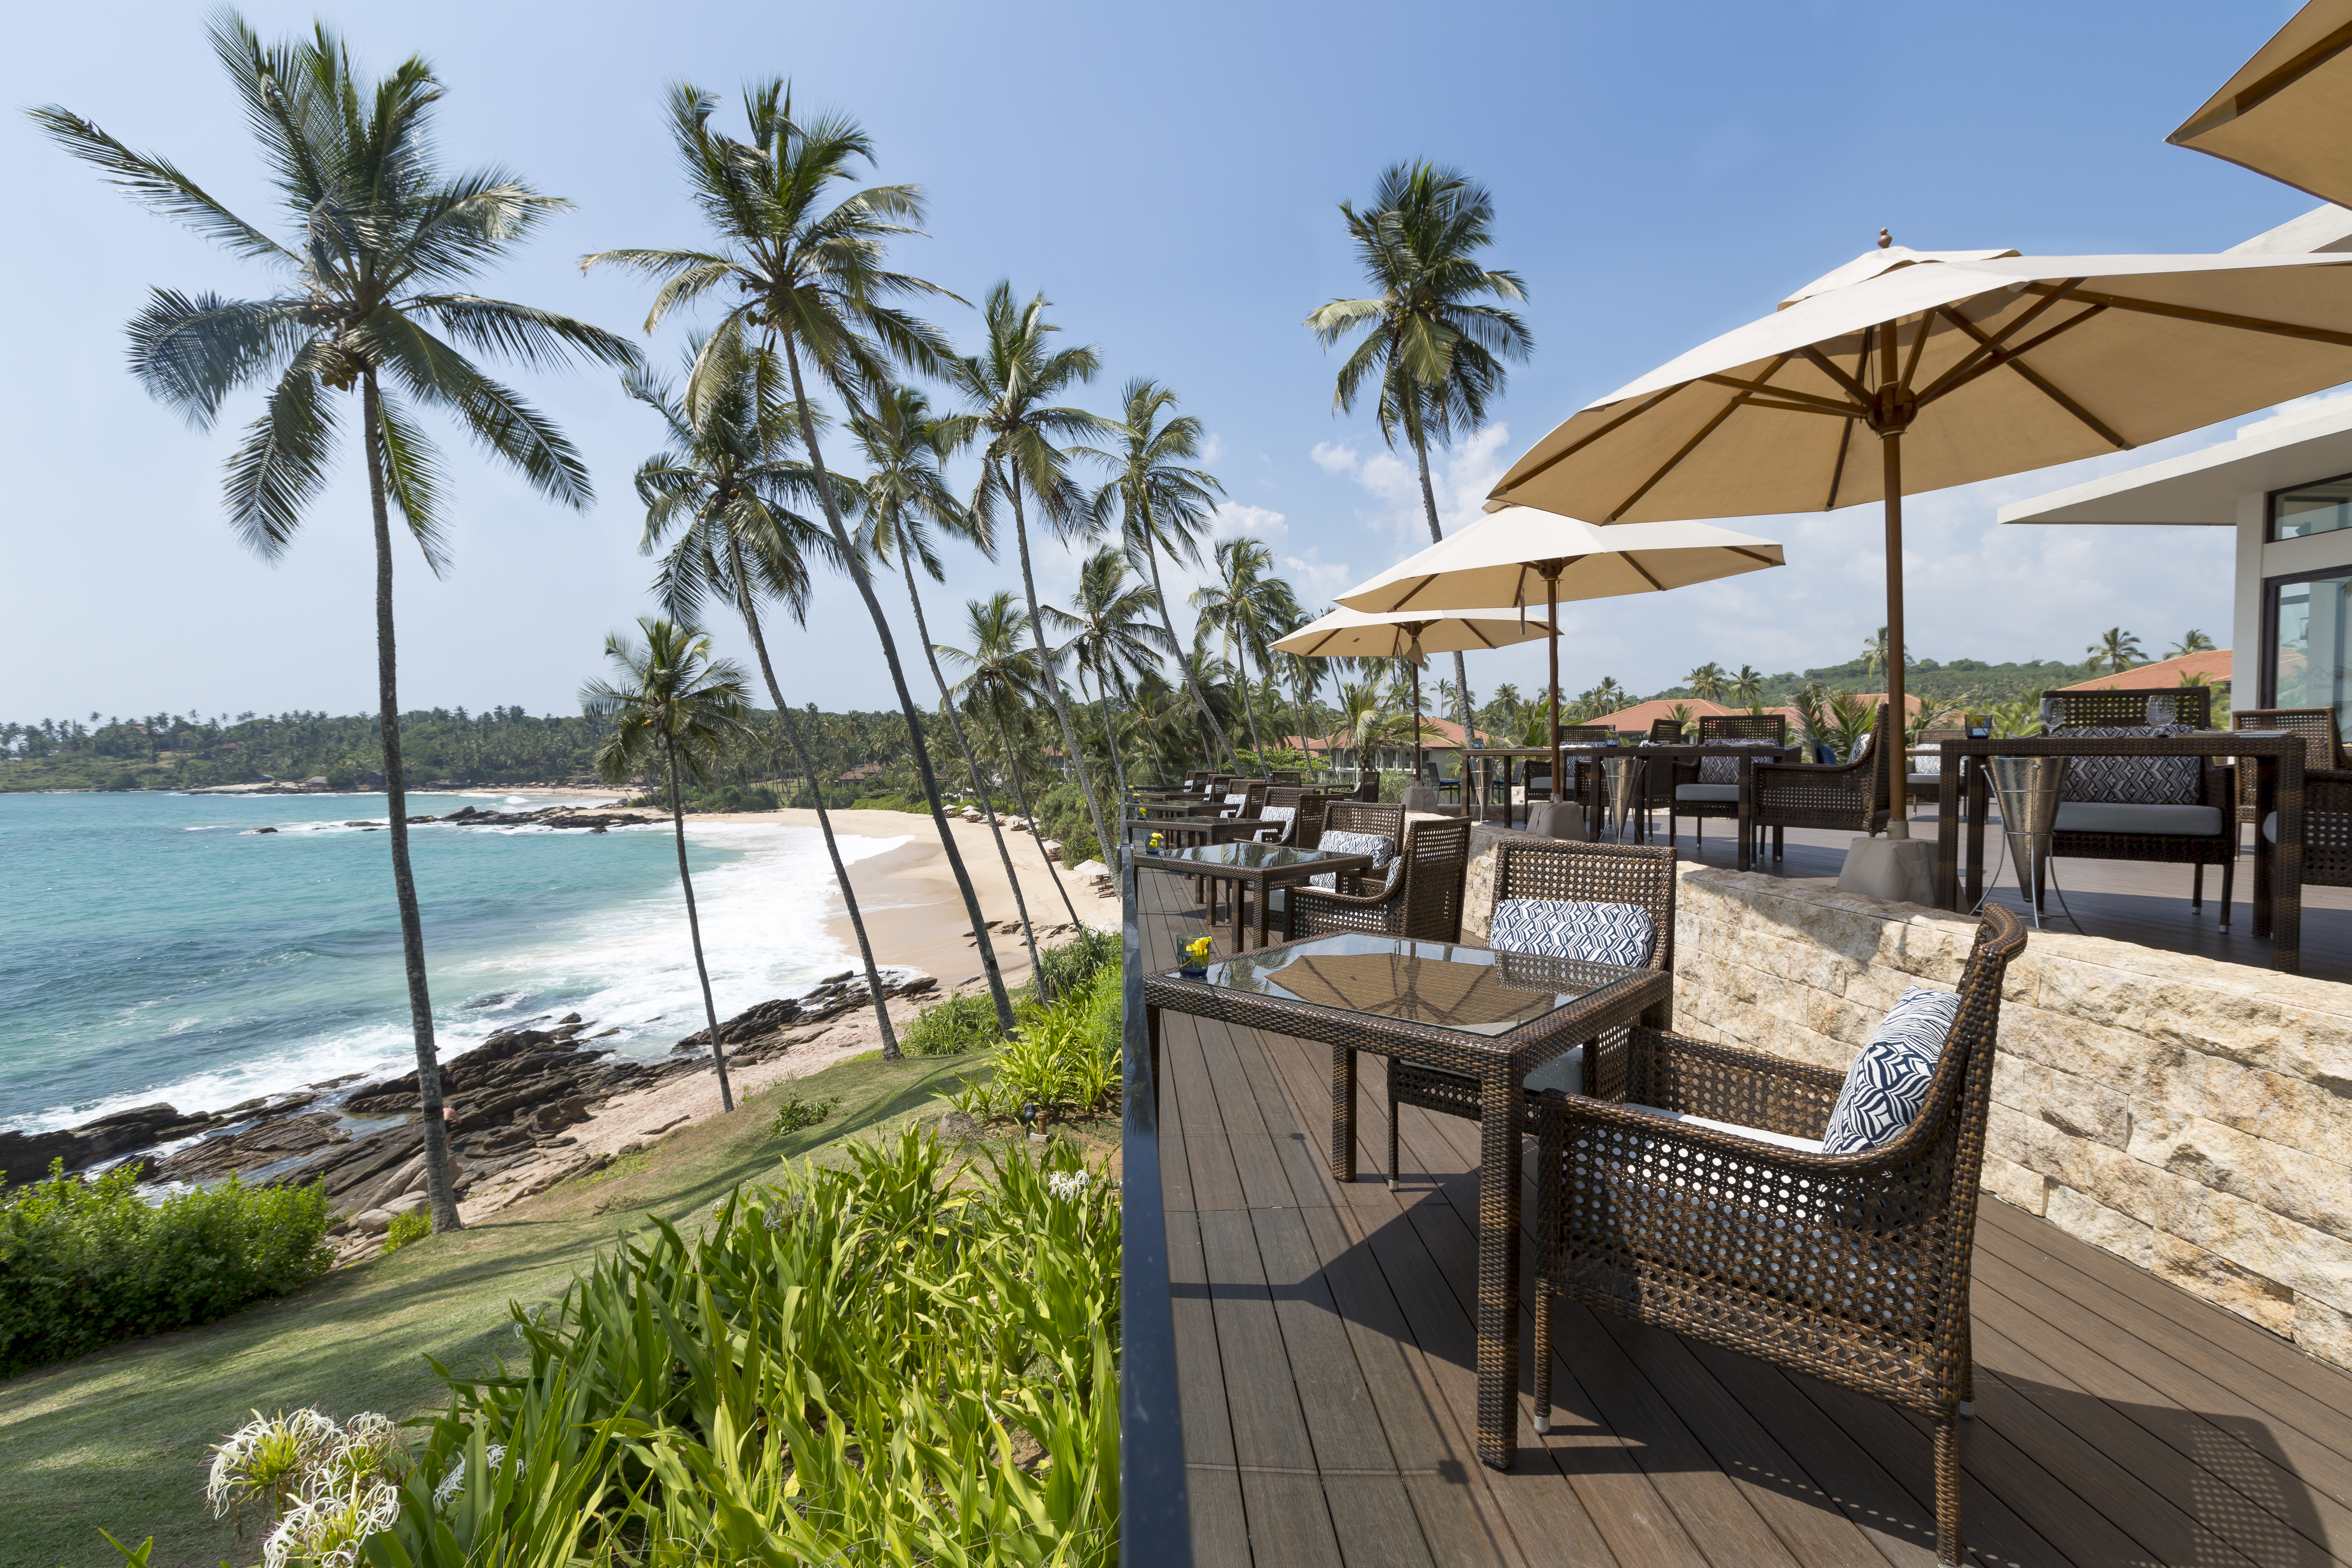 anantara-peace-haven-beach-bar